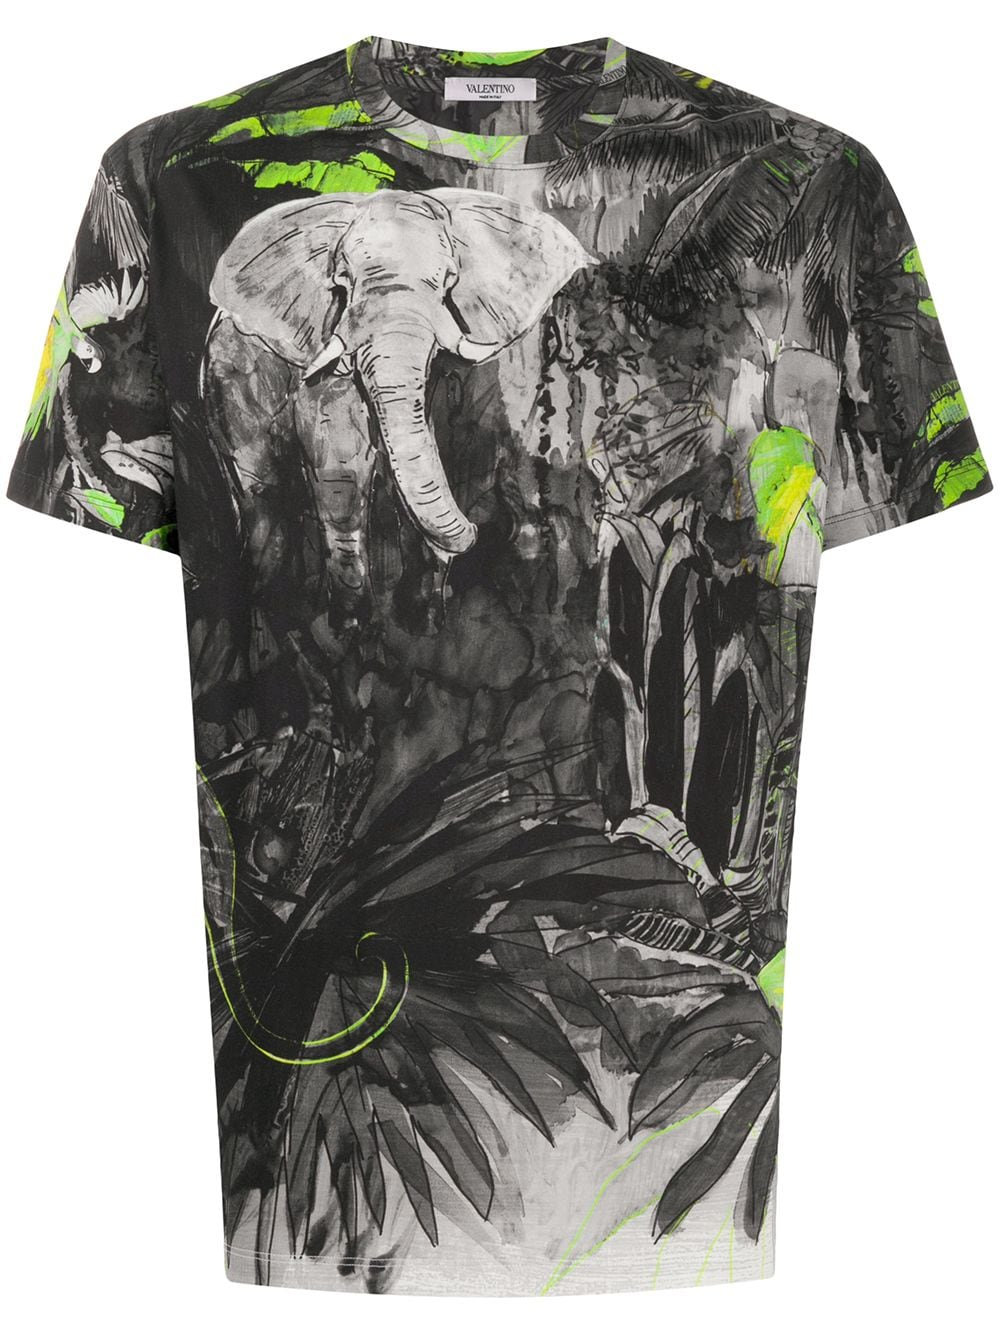 Mural Jungle Cotton T-shirt